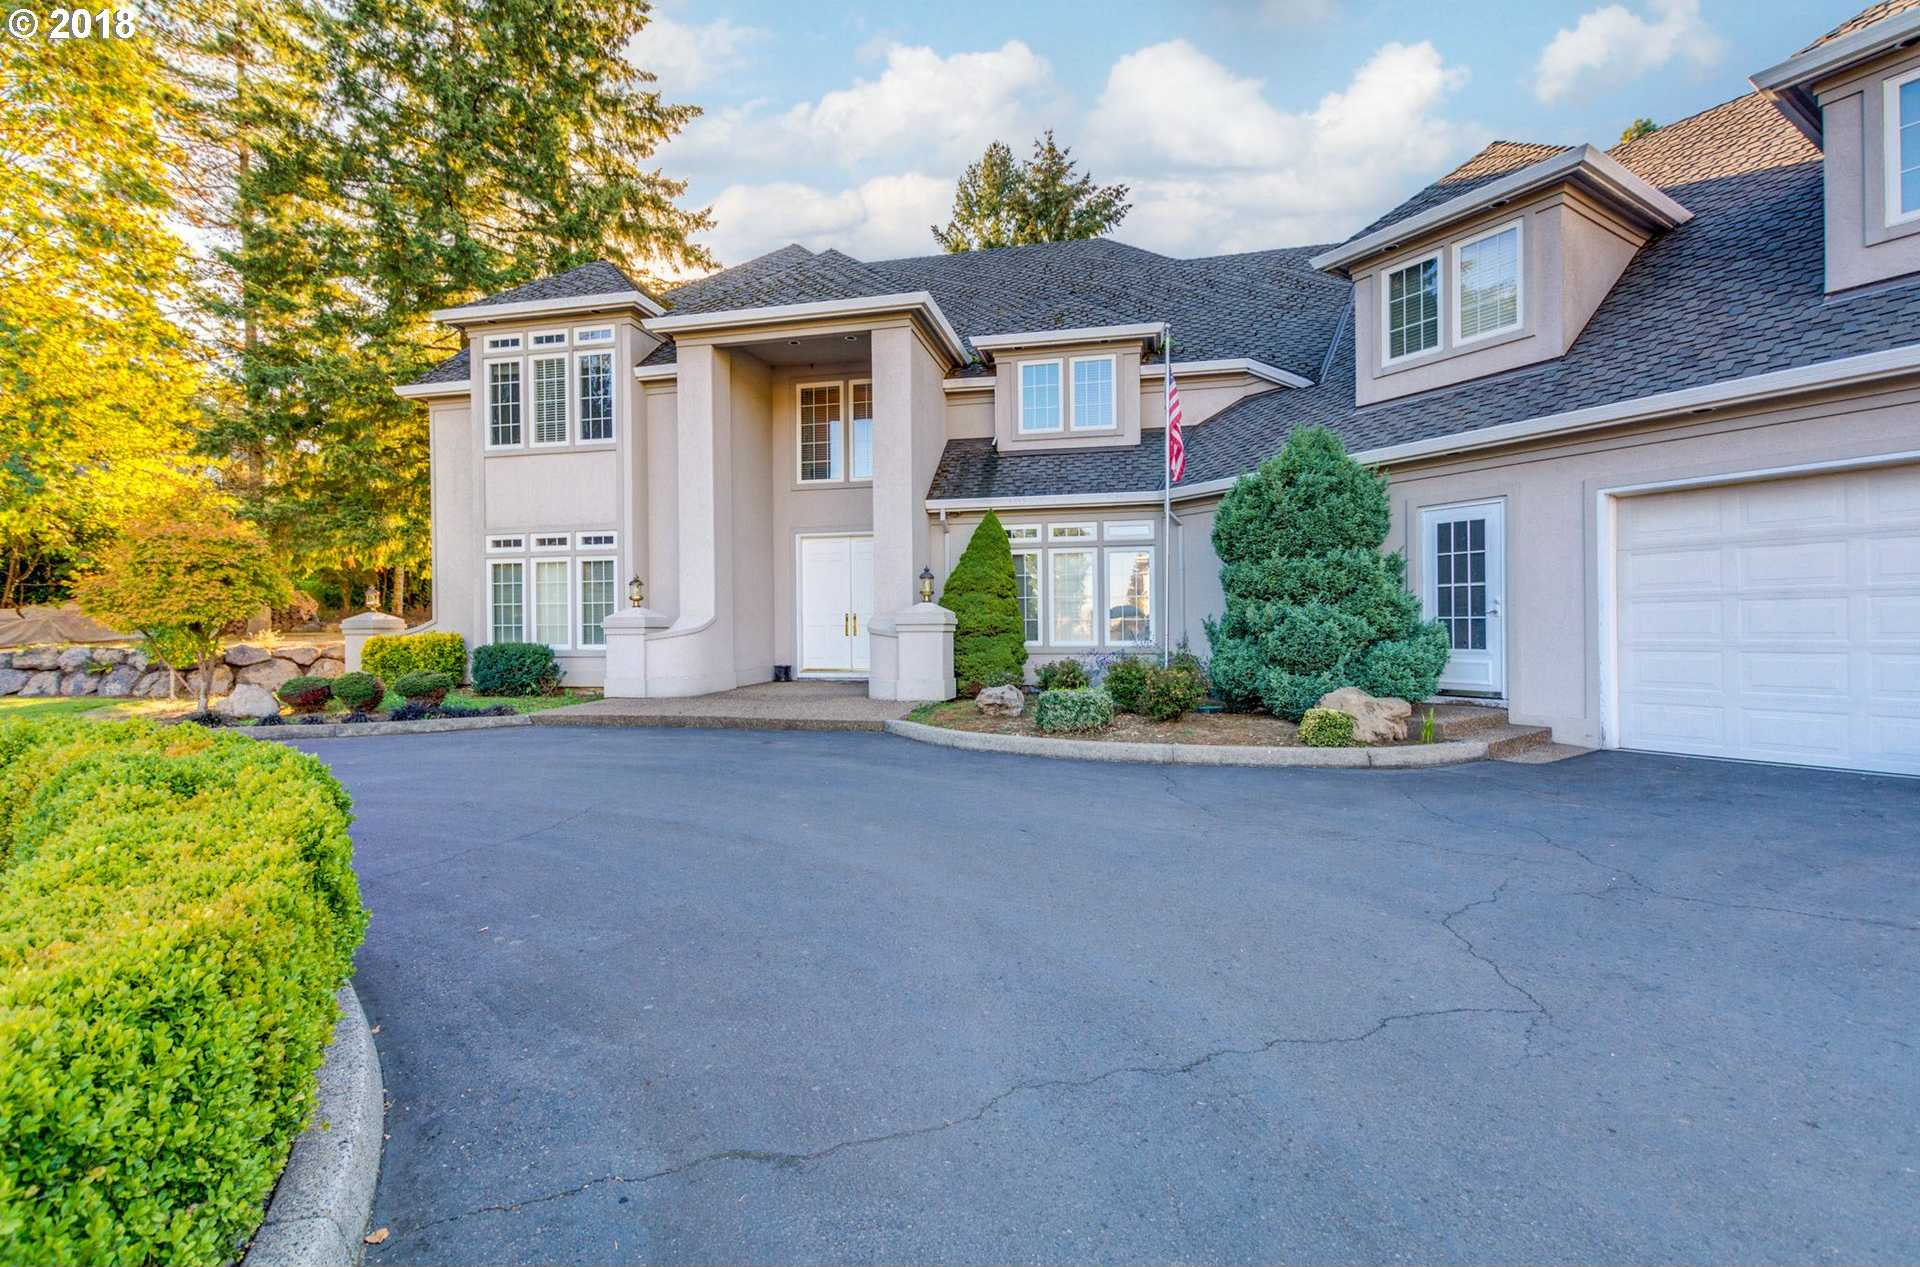 $875,100 - 6Br/5Ba -  for Sale in Tigard, Tigard